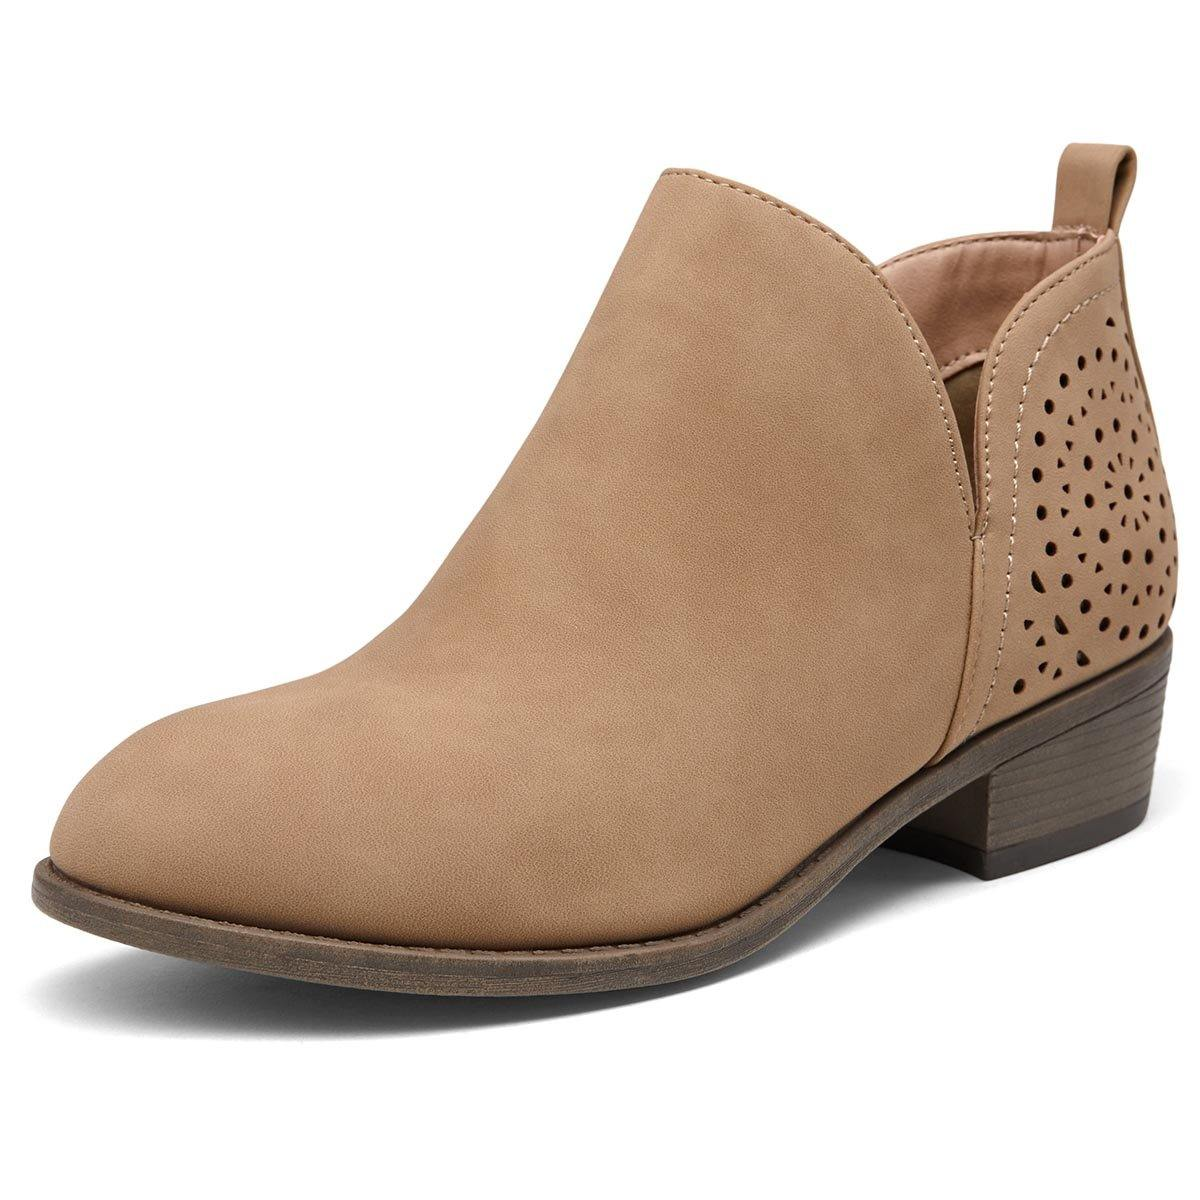 Perforated Western Women Shoes Low Heels | Vepose - Top shoes club